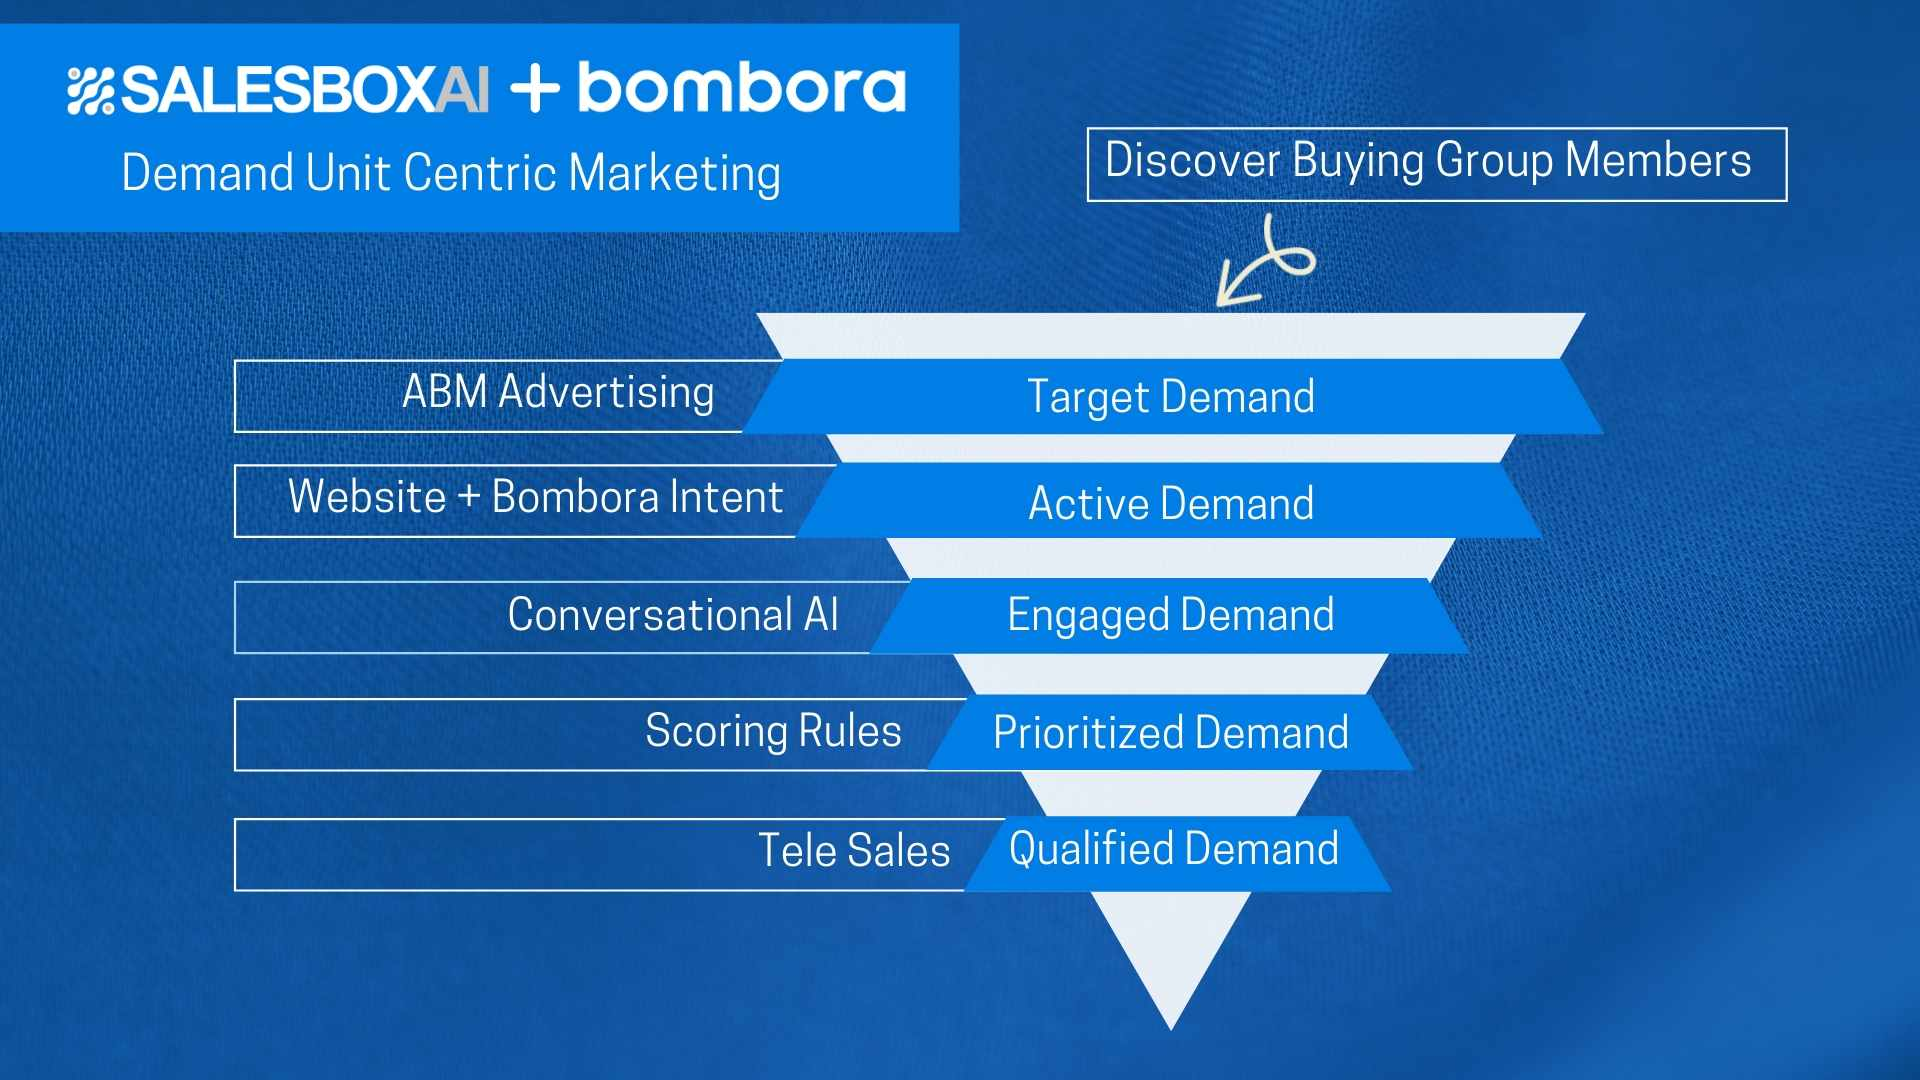 SalesboxAI and Bombora partner to accelerate sales using Company Surge® to identify and engage with Active Demand Units